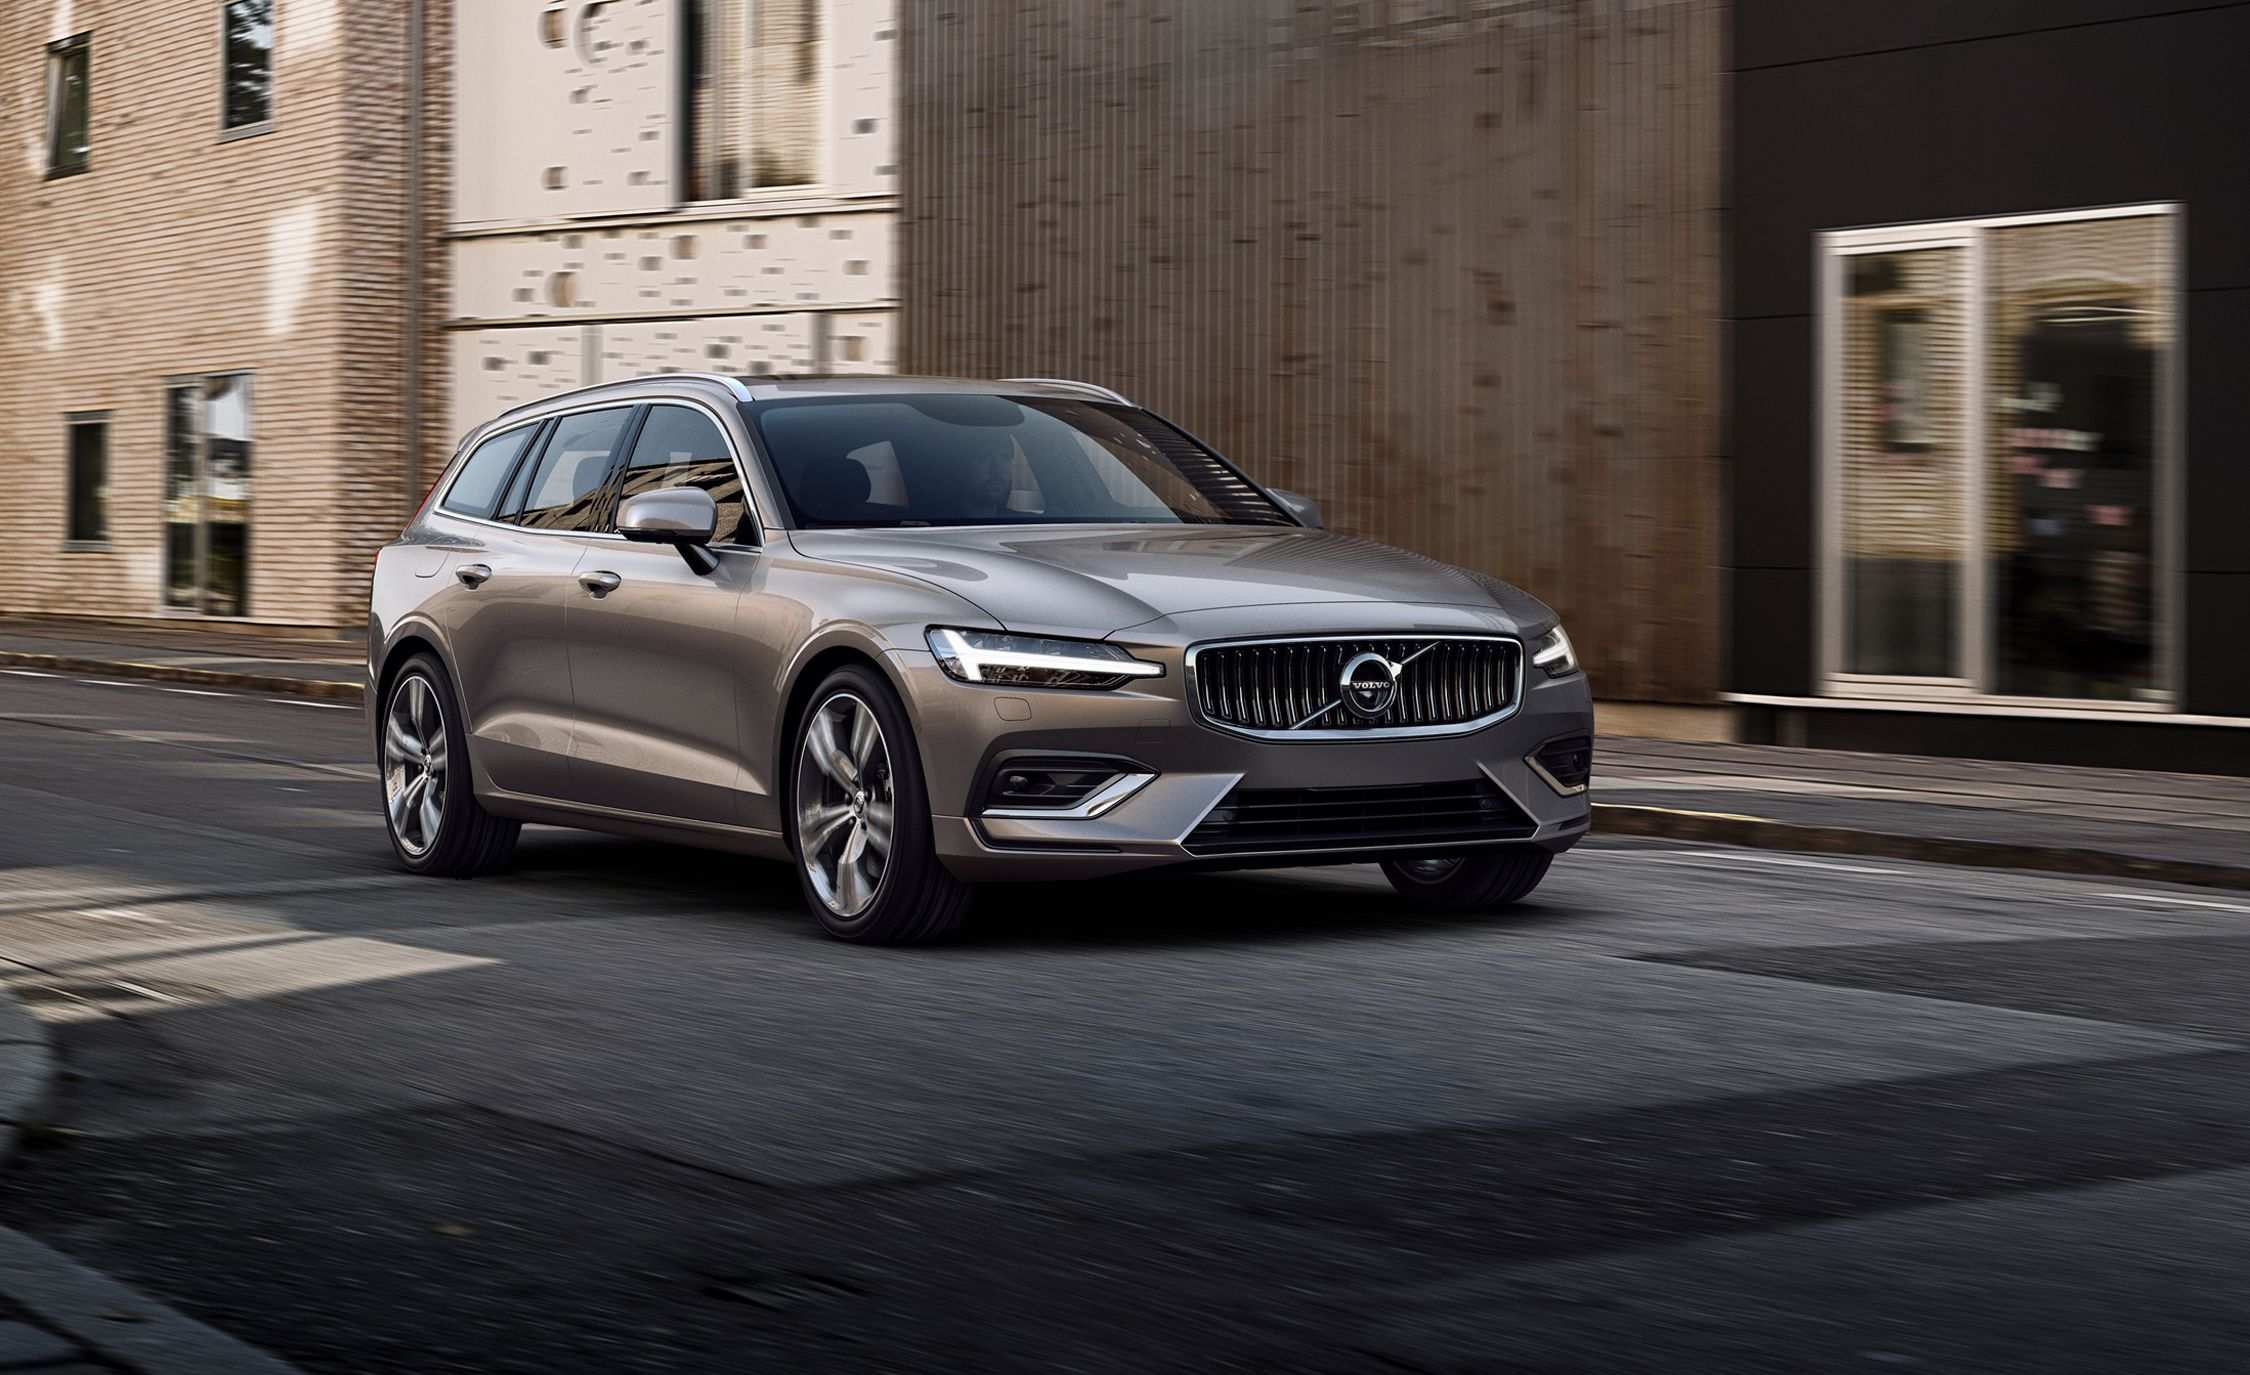 30 New Best Volvo Cars 2019 Models Specs First Drive for Best Volvo Cars 2019 Models Specs